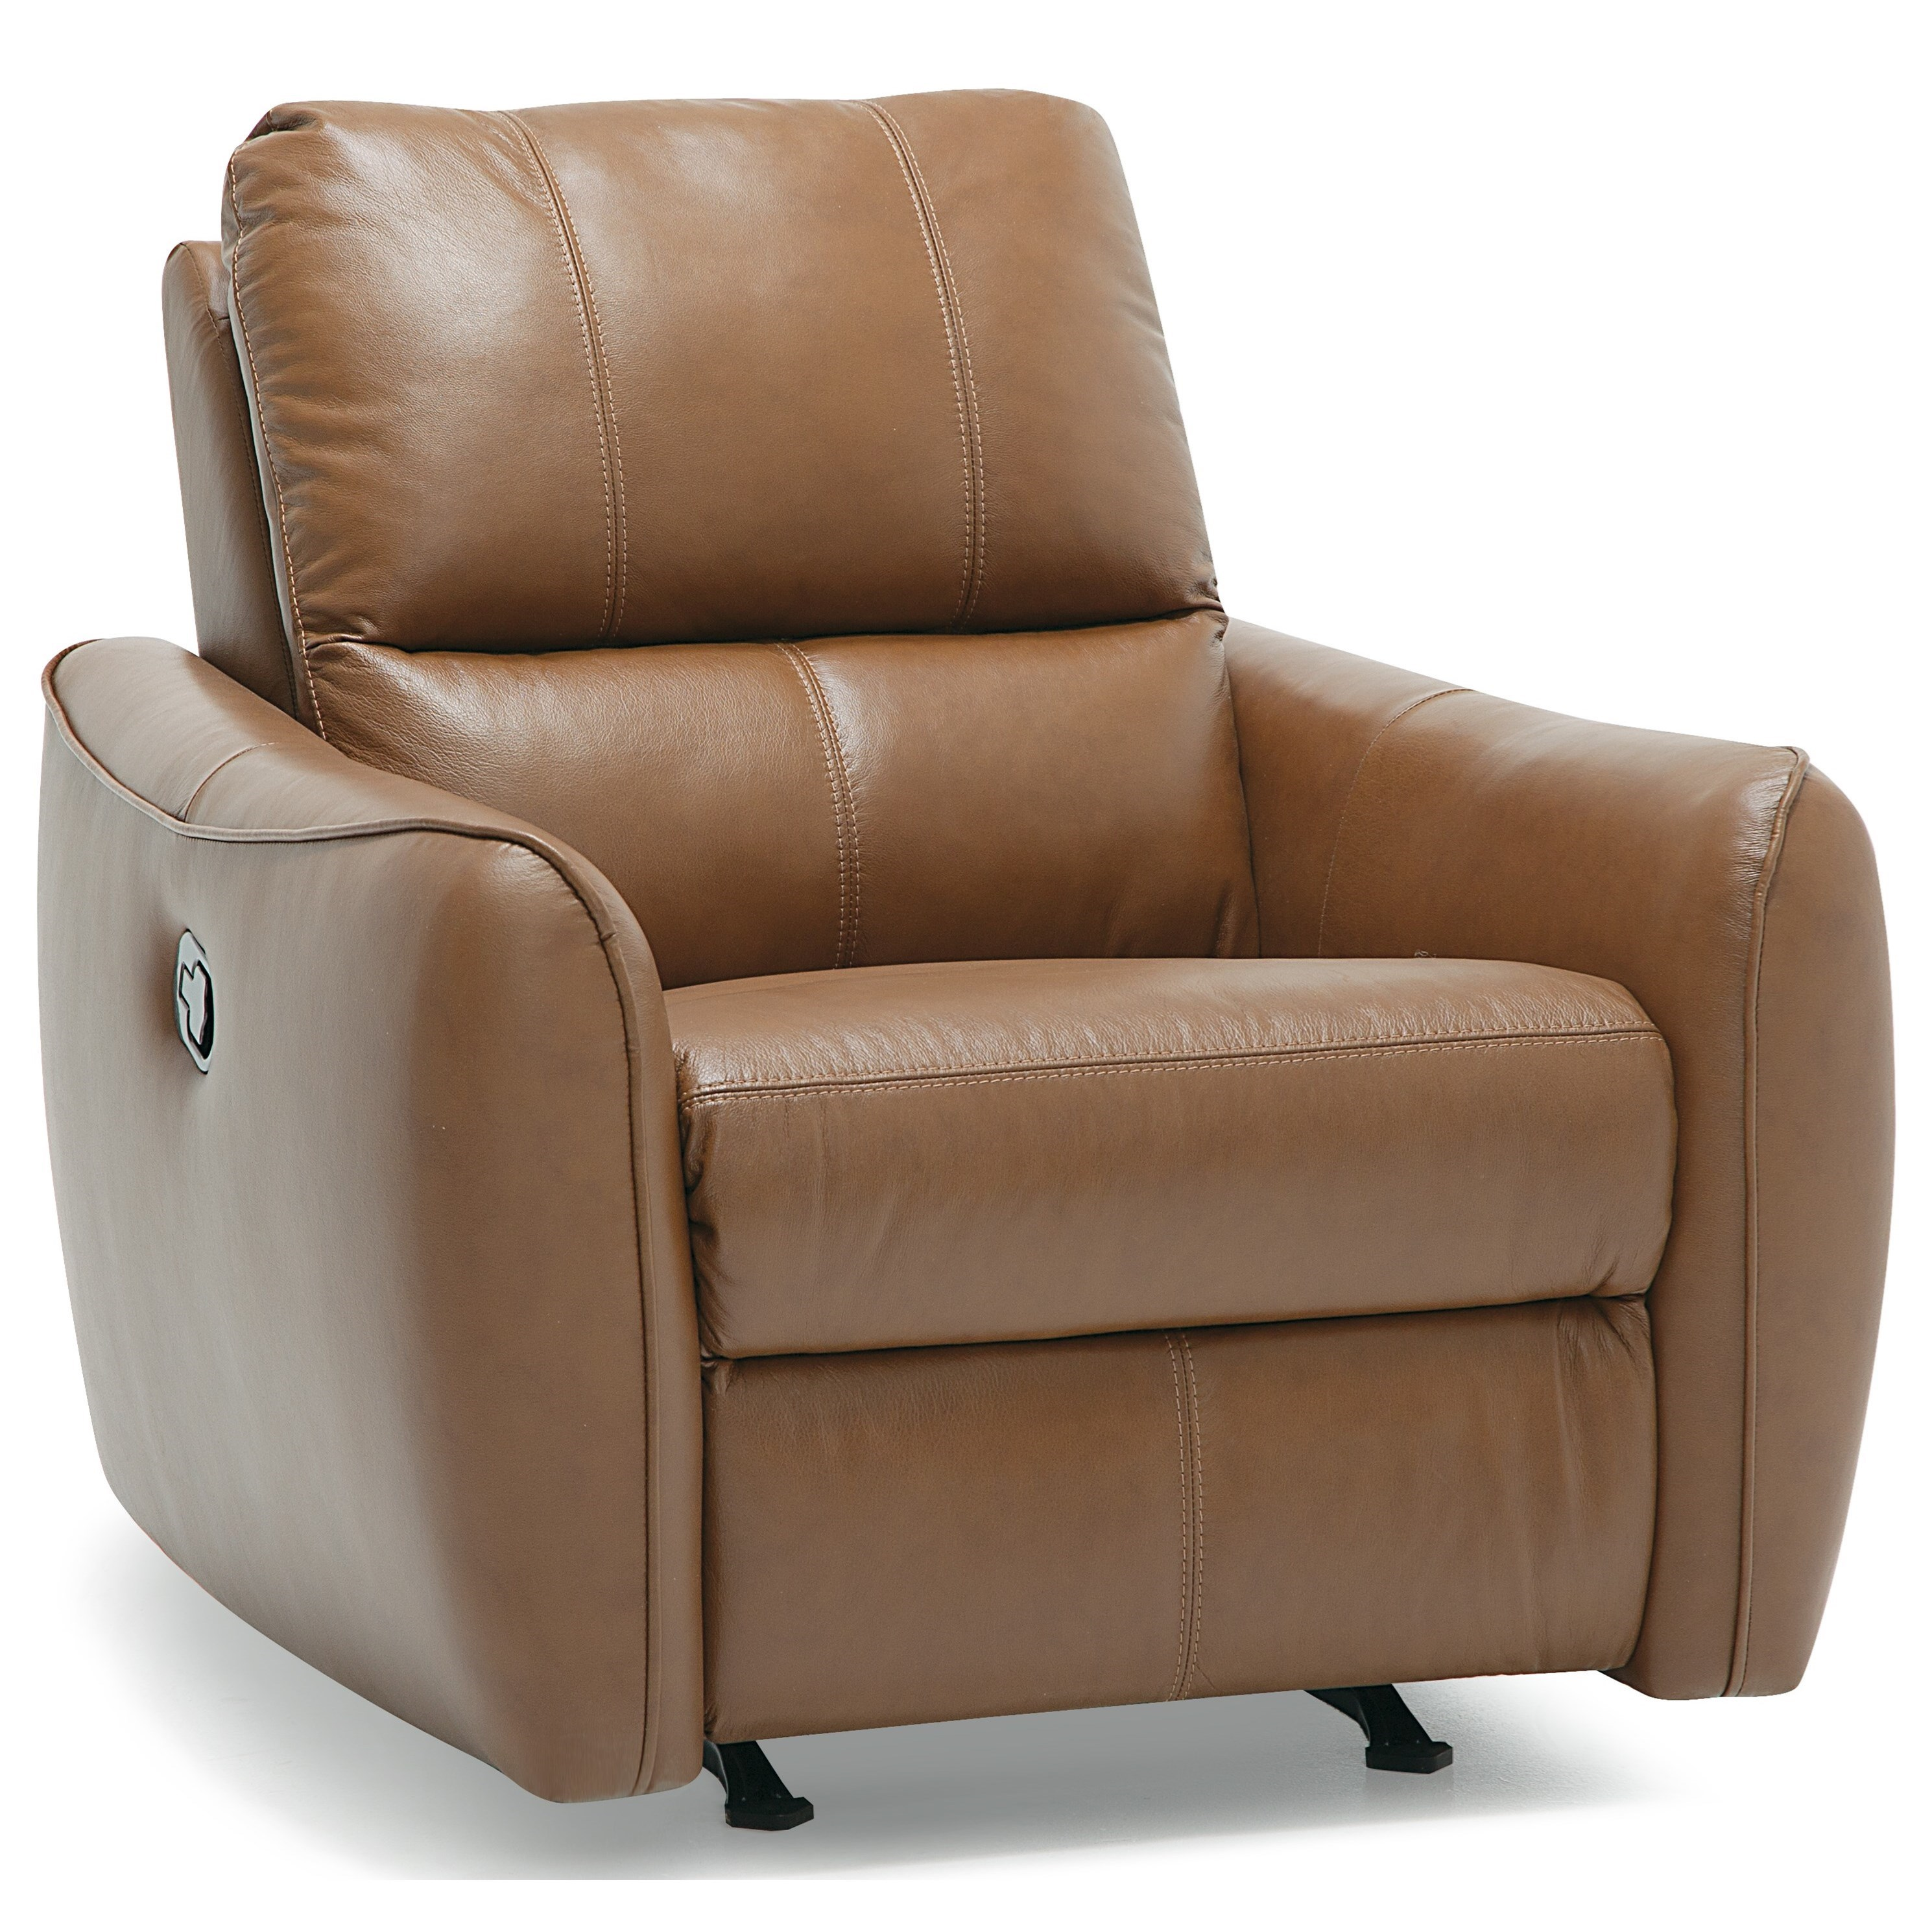 Arlo Rocker Manual Recliner by Palliser at Reid's Furniture